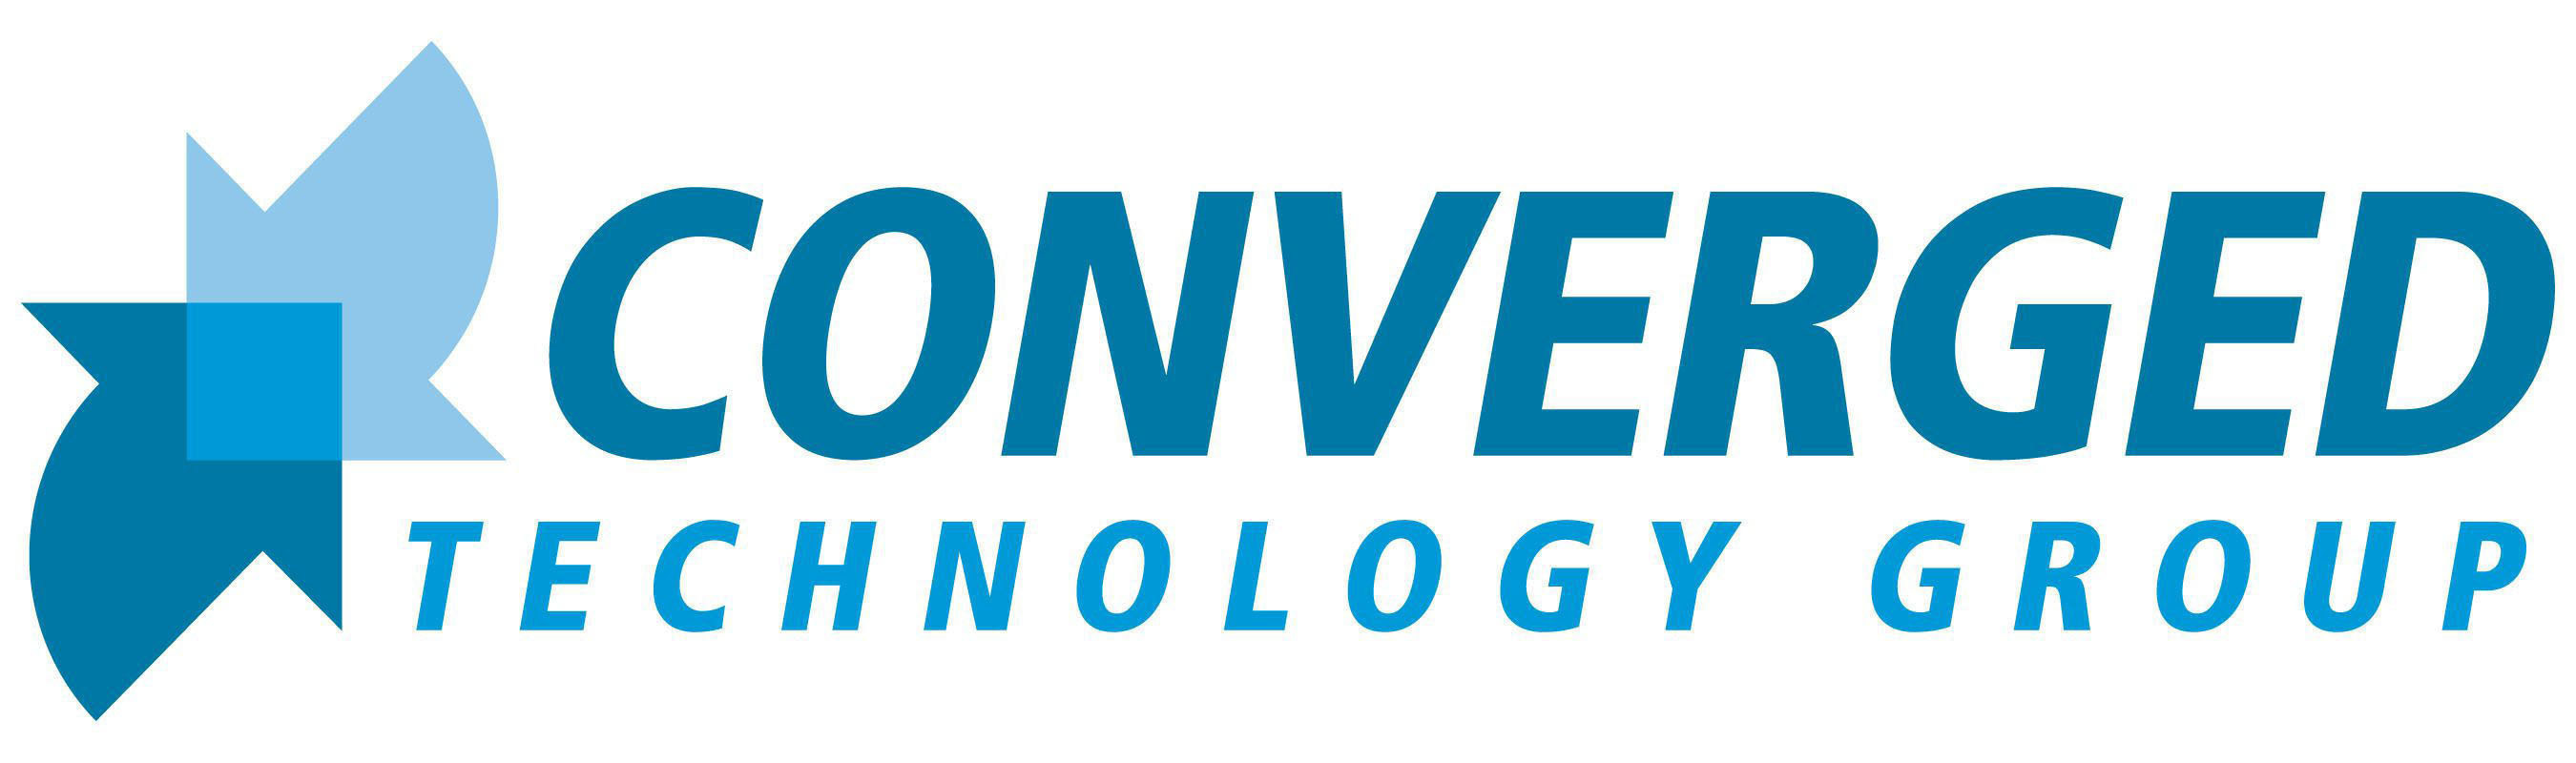 Converged Technology Group Celebrates 10 Years in Business ...